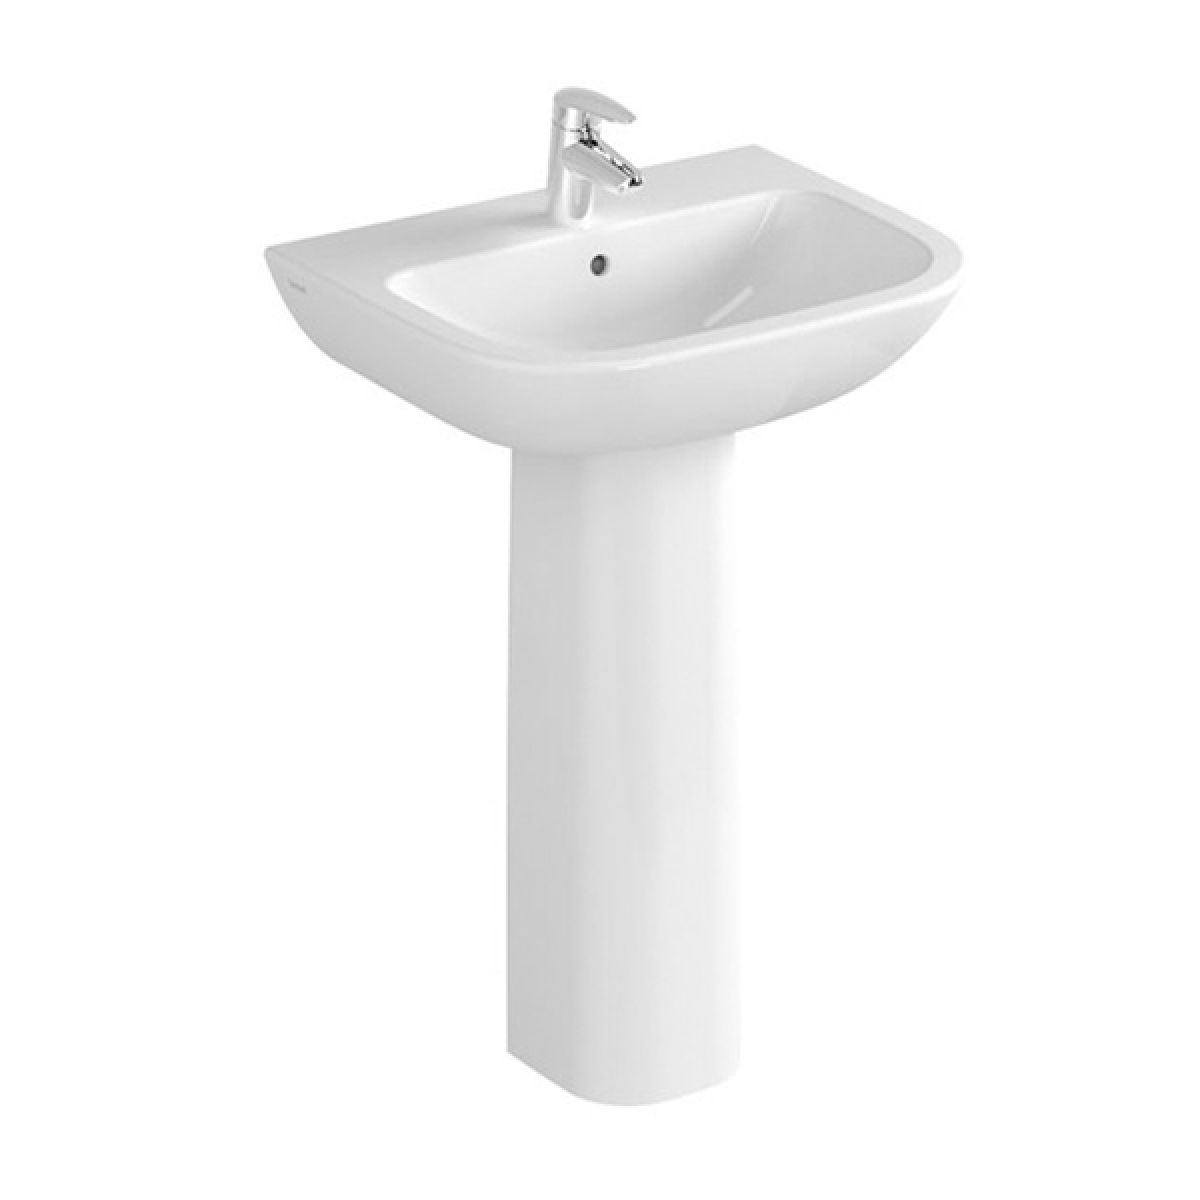 Vitra S20 2 Tap Hole Cloakroom Basin with Full Pedestal 500mm